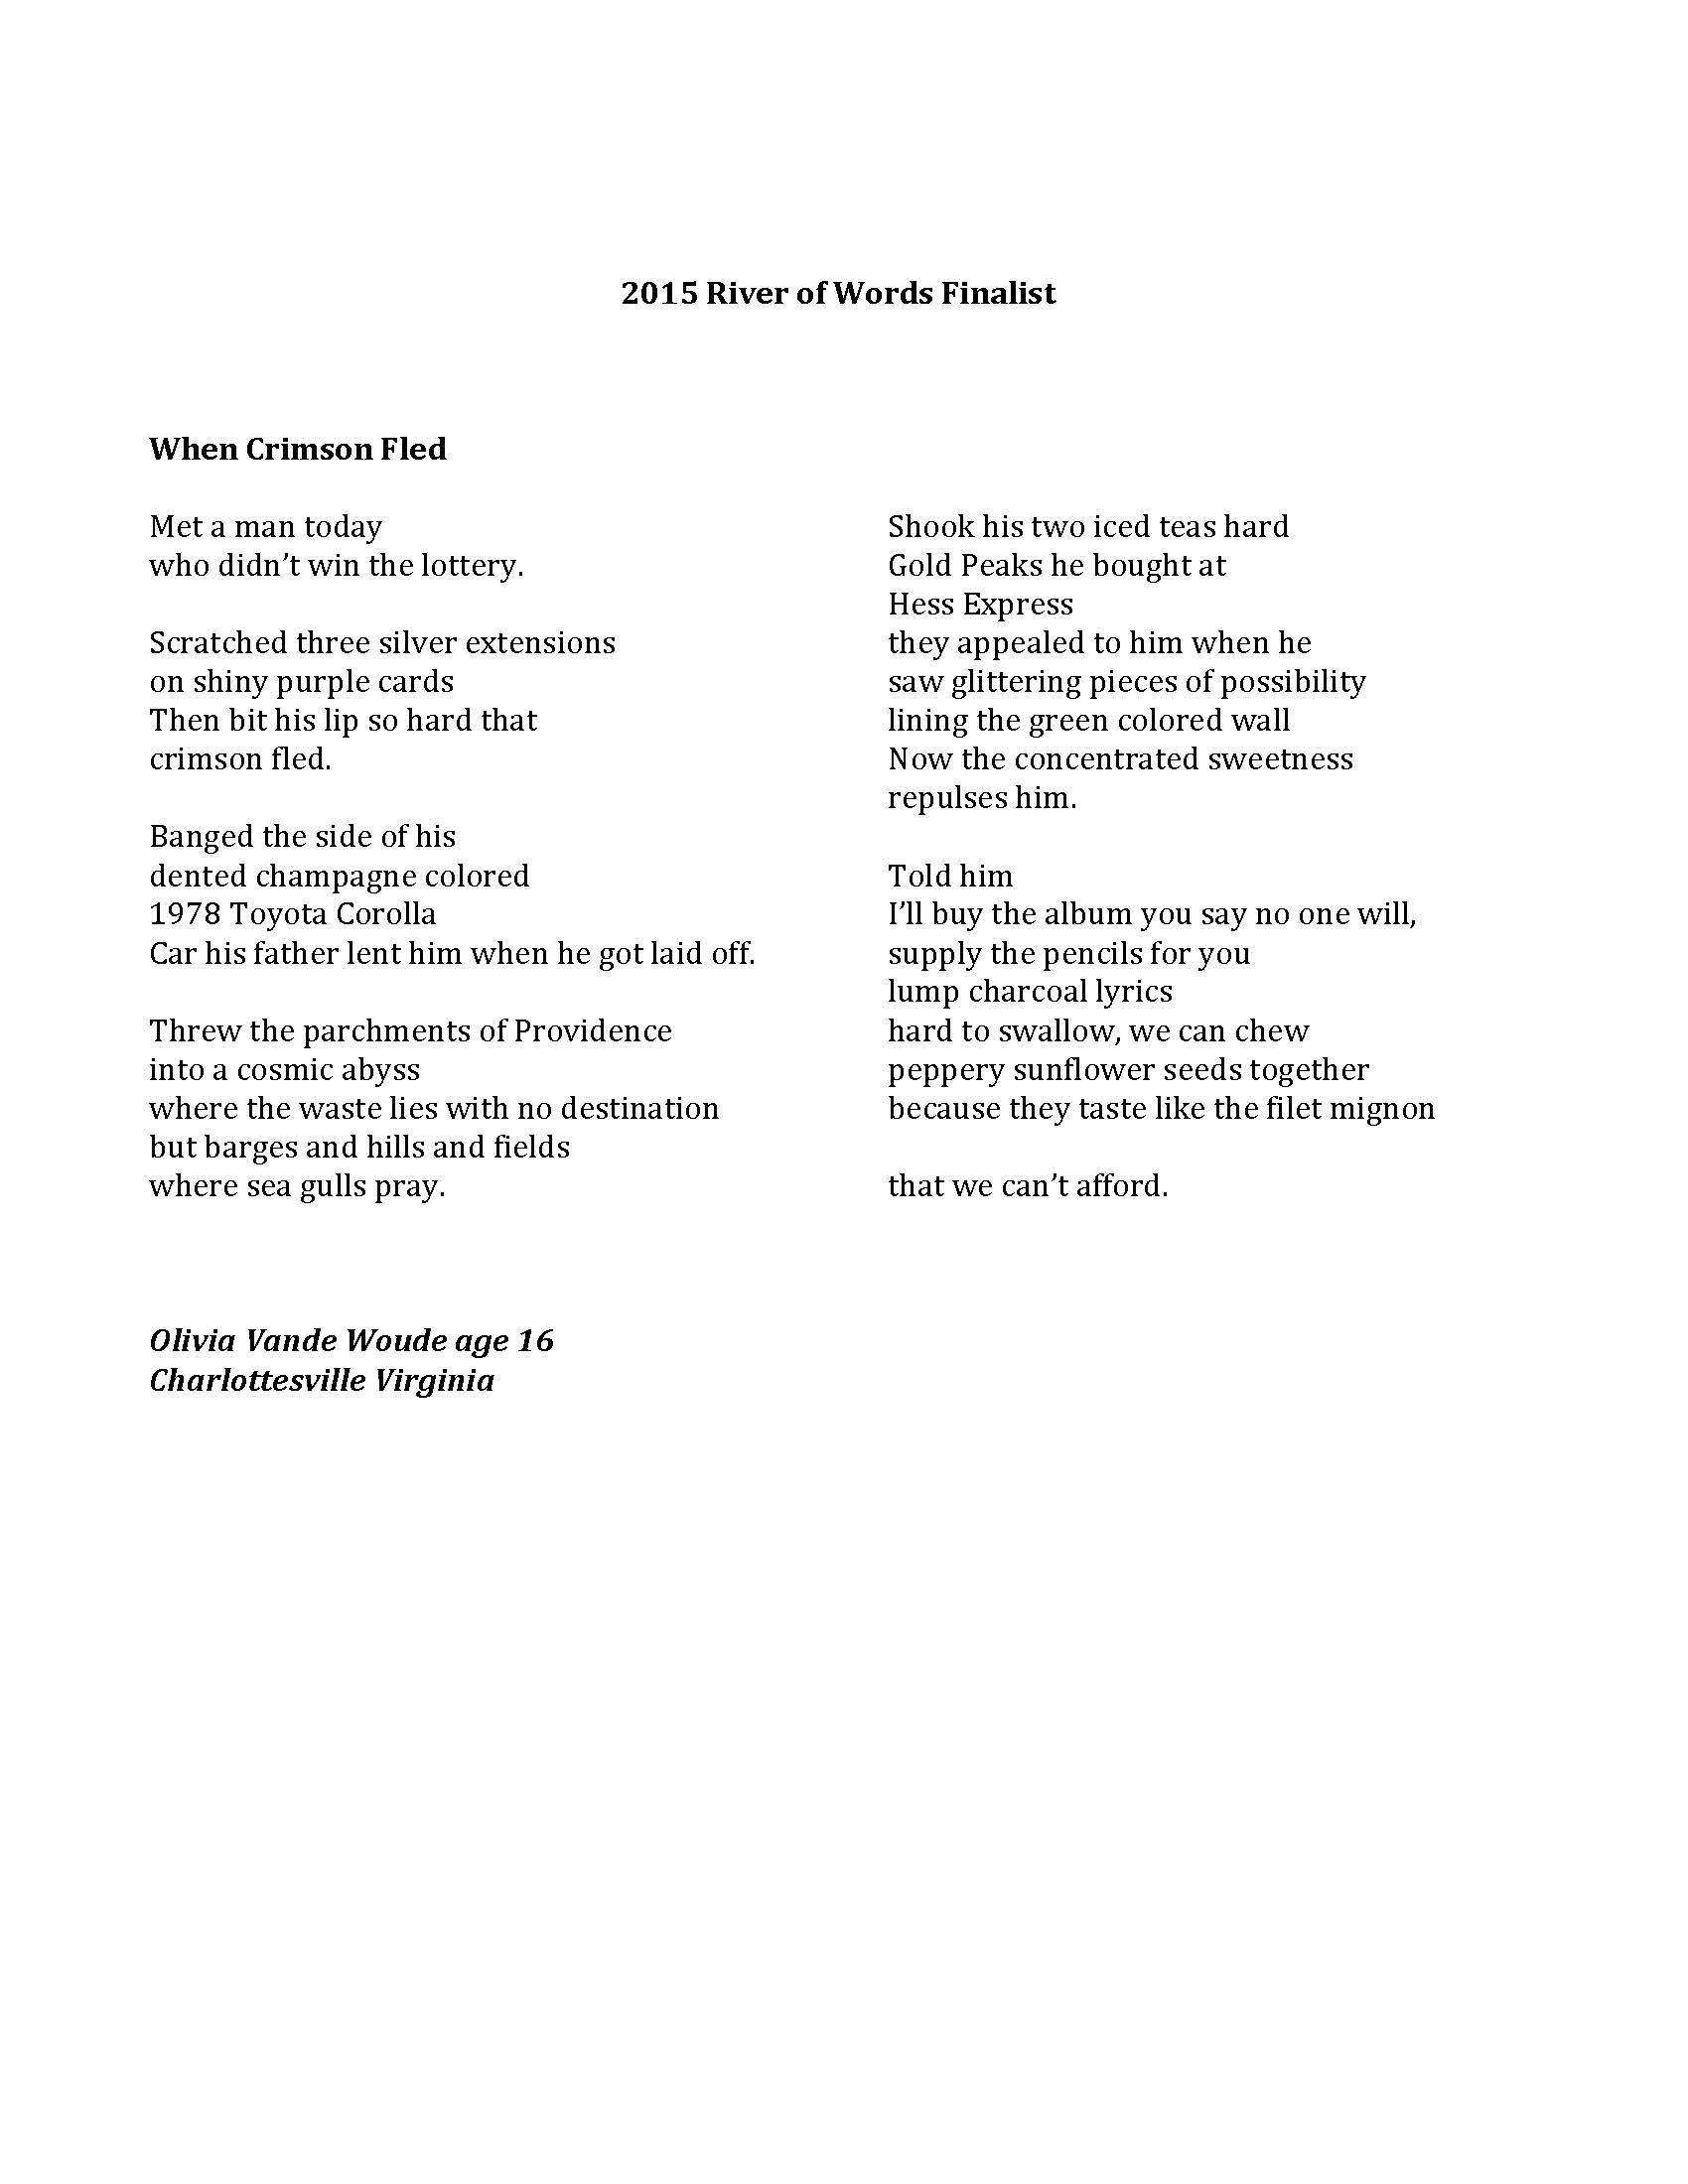 2015 River of Words Winners and Finalists